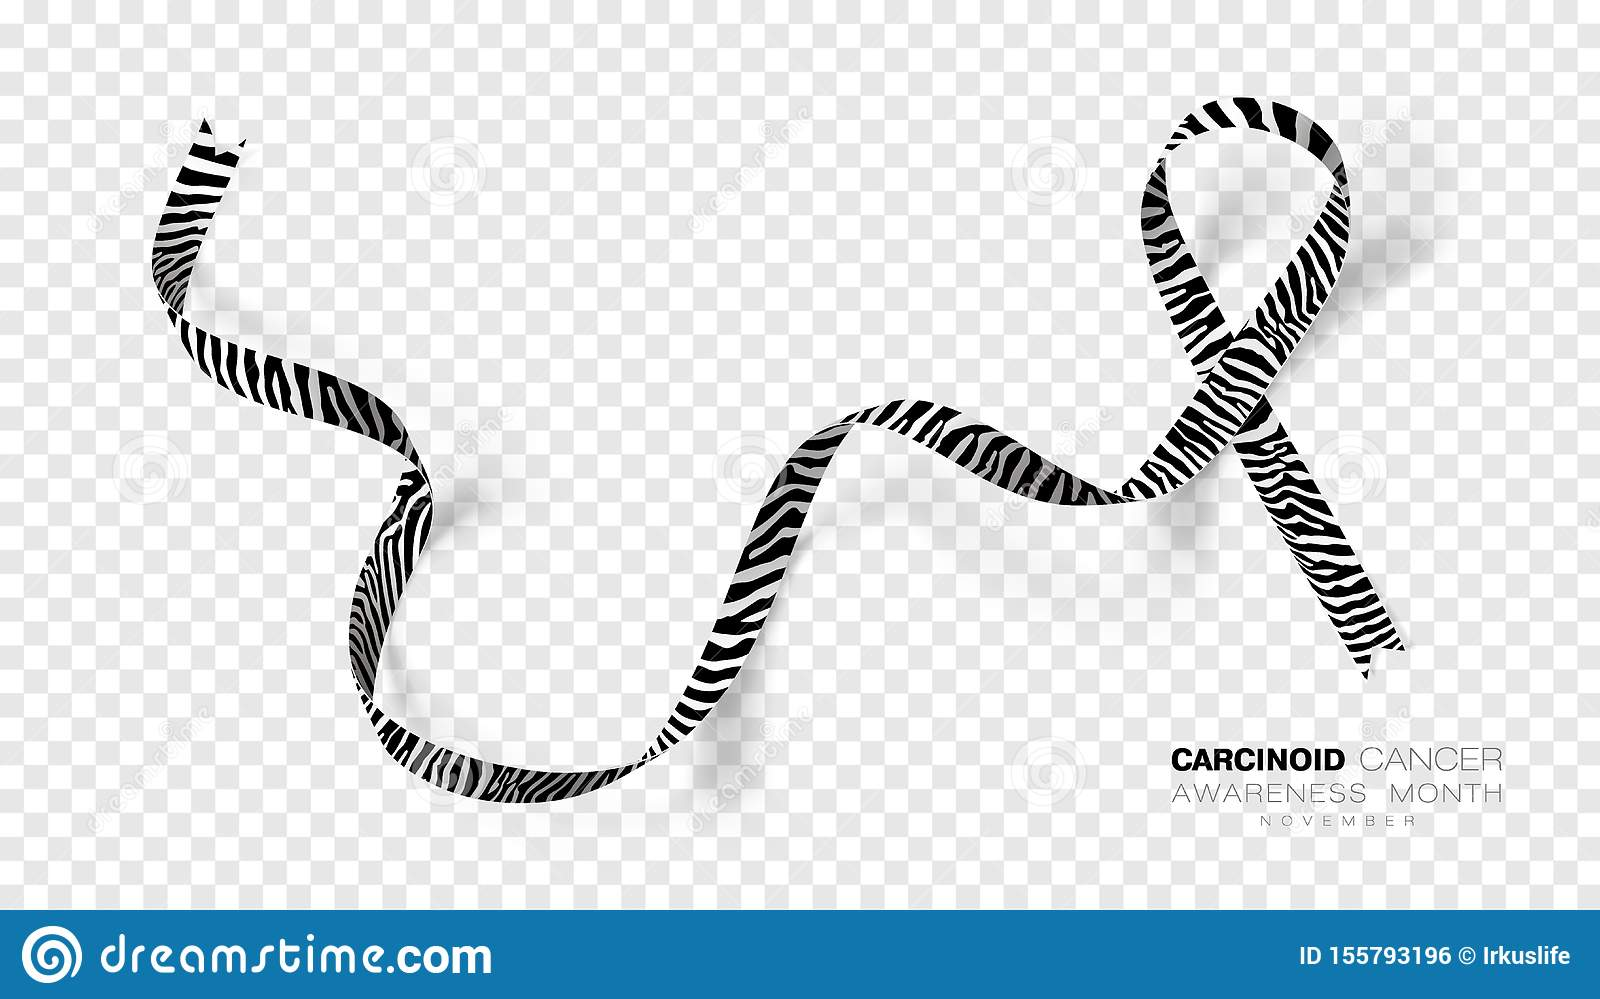 Carcinoid Cancer Awareness Month. Zebra Stripe Color Ribbon Isolated On Transparent Background. Vector Design Template